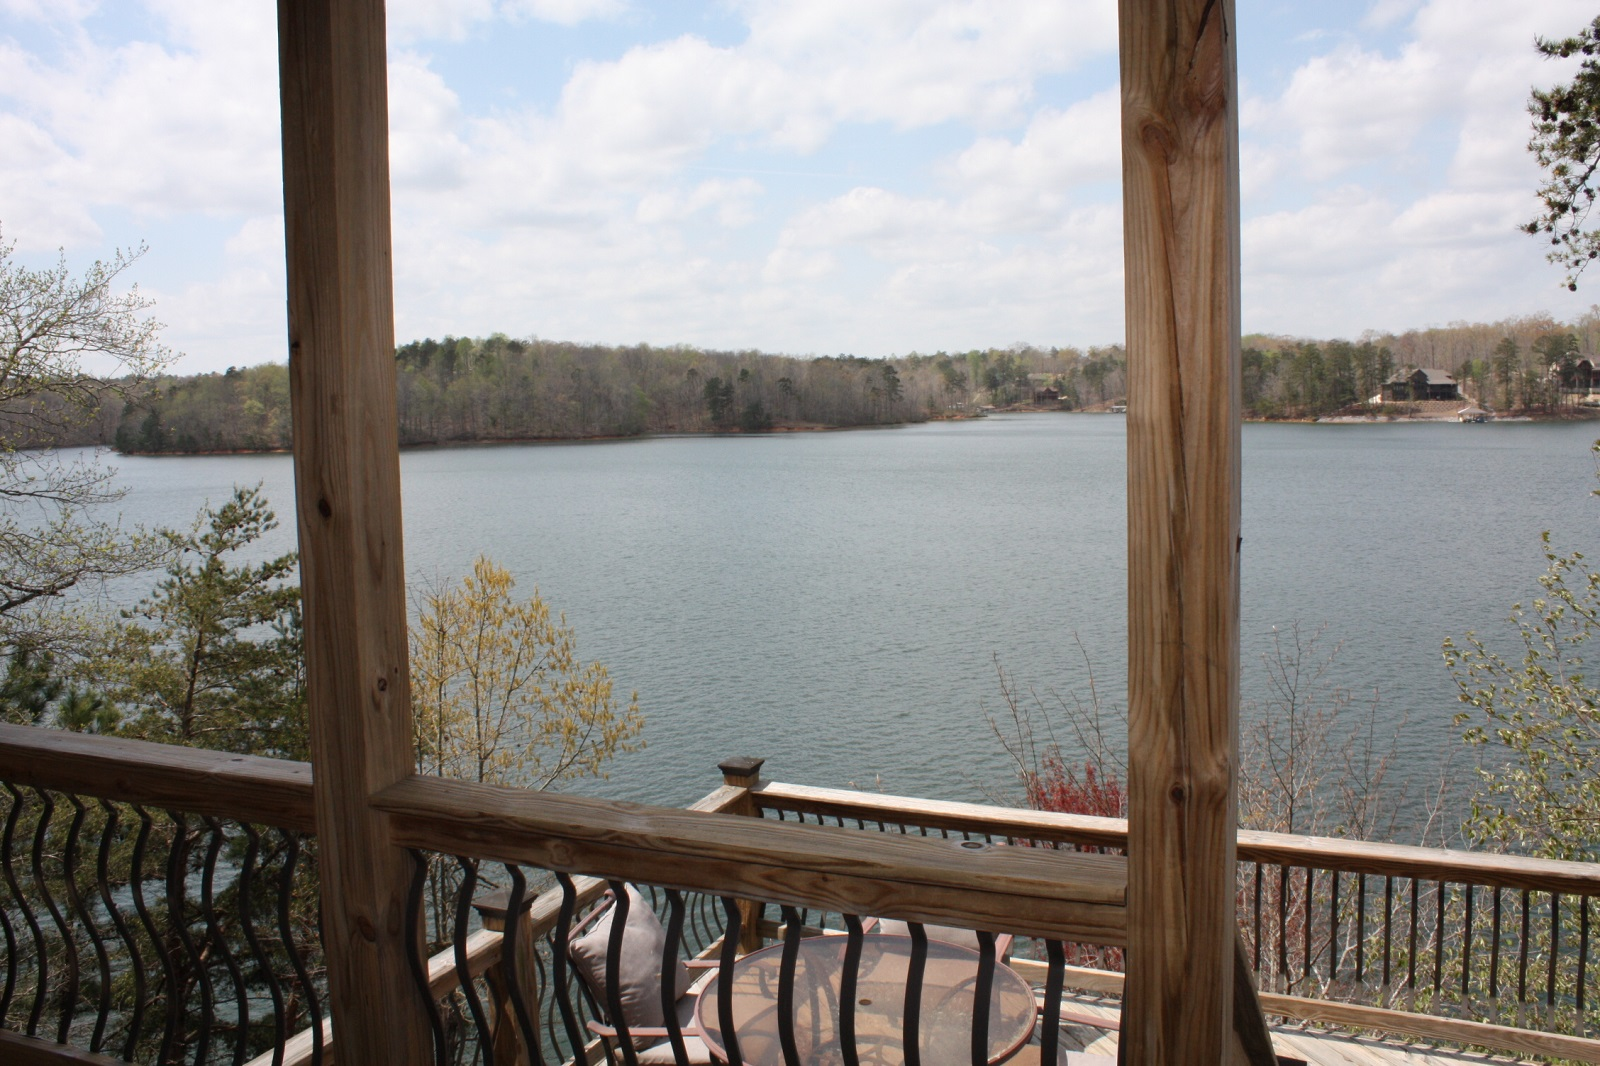 Windemere View - Smith Lake Rentals and Sales